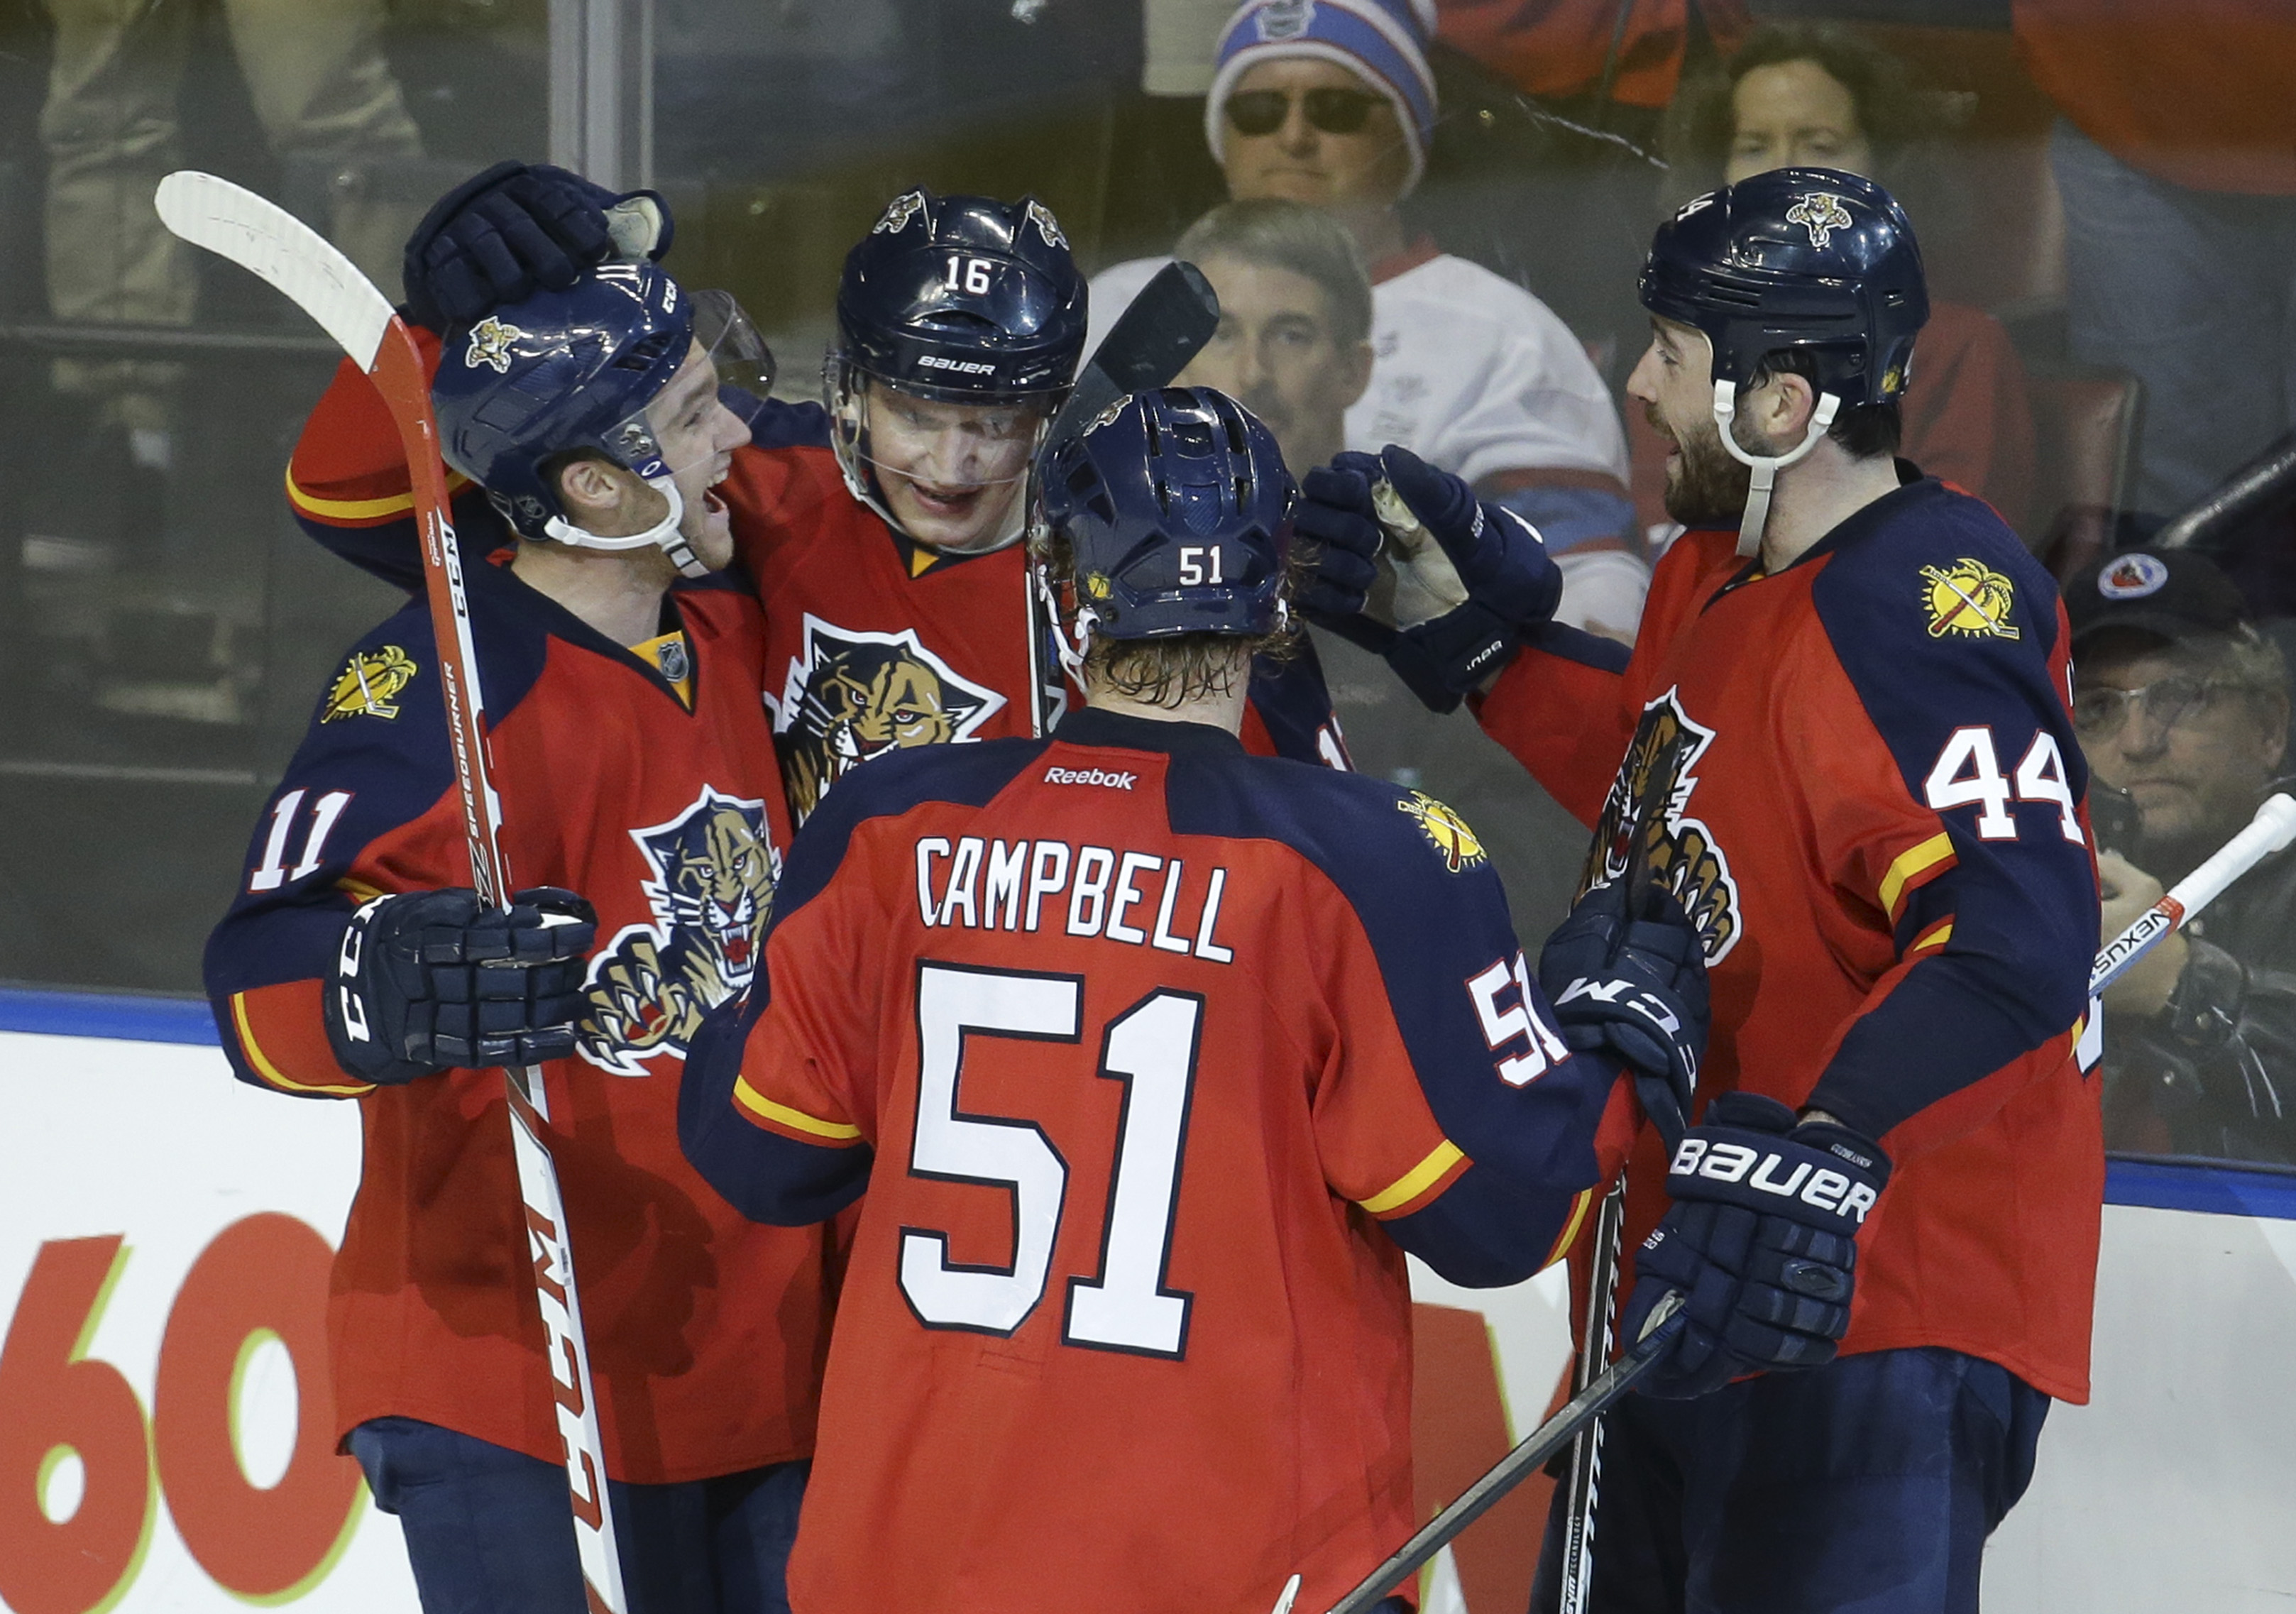 Florida Panthers center Aleksander Barkov (16) is congratulated by center Jonathan Huberdeau (11), defenseman Brian Campbell (51) and defenseman Erik Gudbranson (44) after scoring a goal during the third period of an NHL hockey game against the Montreal C